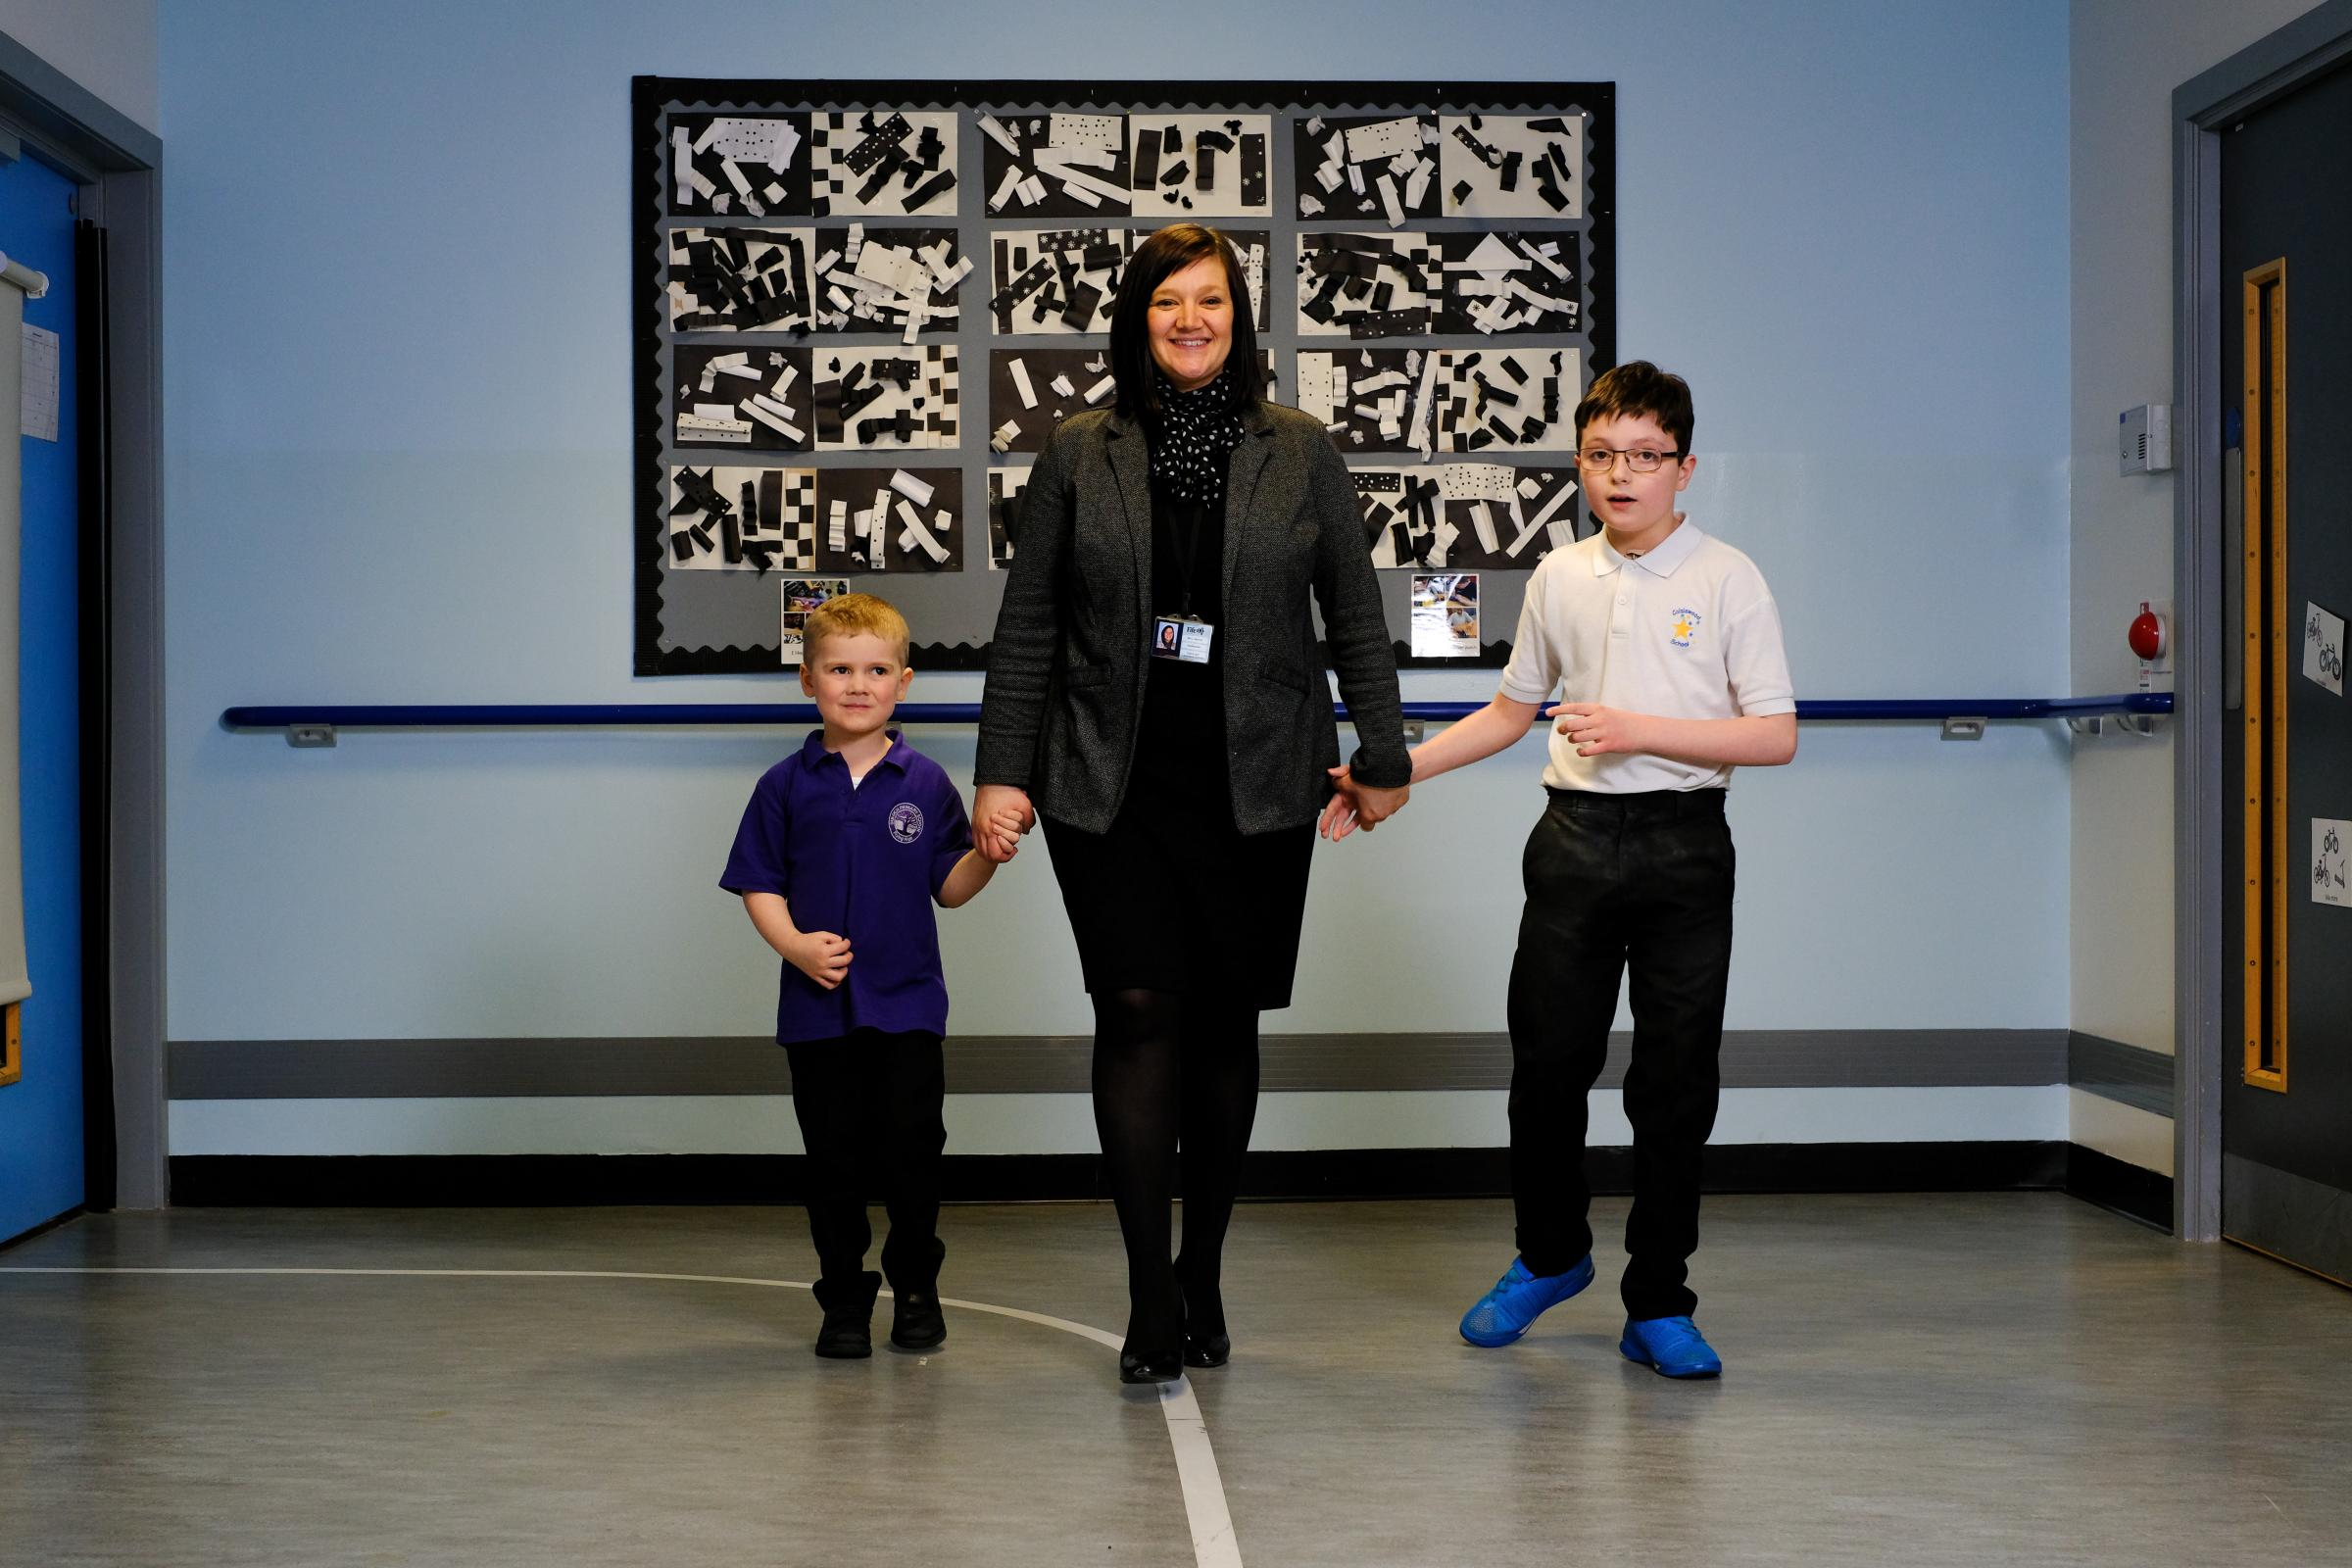 New headteacher Laura Spence with Harris McCreadie (Duloch) and Adam Jackson (Calaiswood). Photo: Jim Payne.